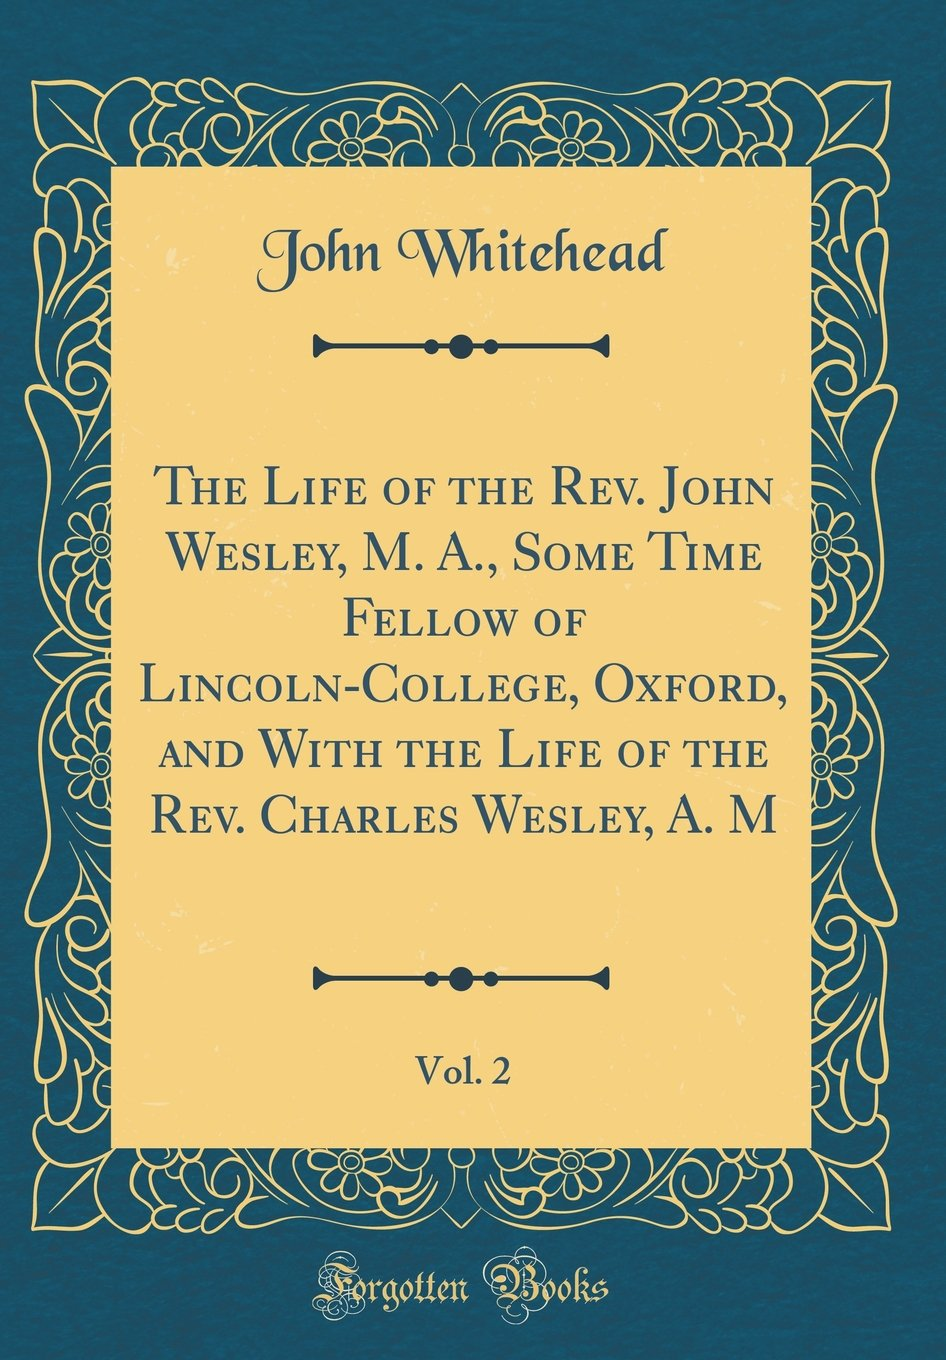 Read Online The Life of the Rev. John Wesley, M. A., Some Time Fellow of Lincoln-College, Oxford, and With the Life of the Rev. Charles Wesley, A. M, Vol. 2 (Classic Reprint) pdf